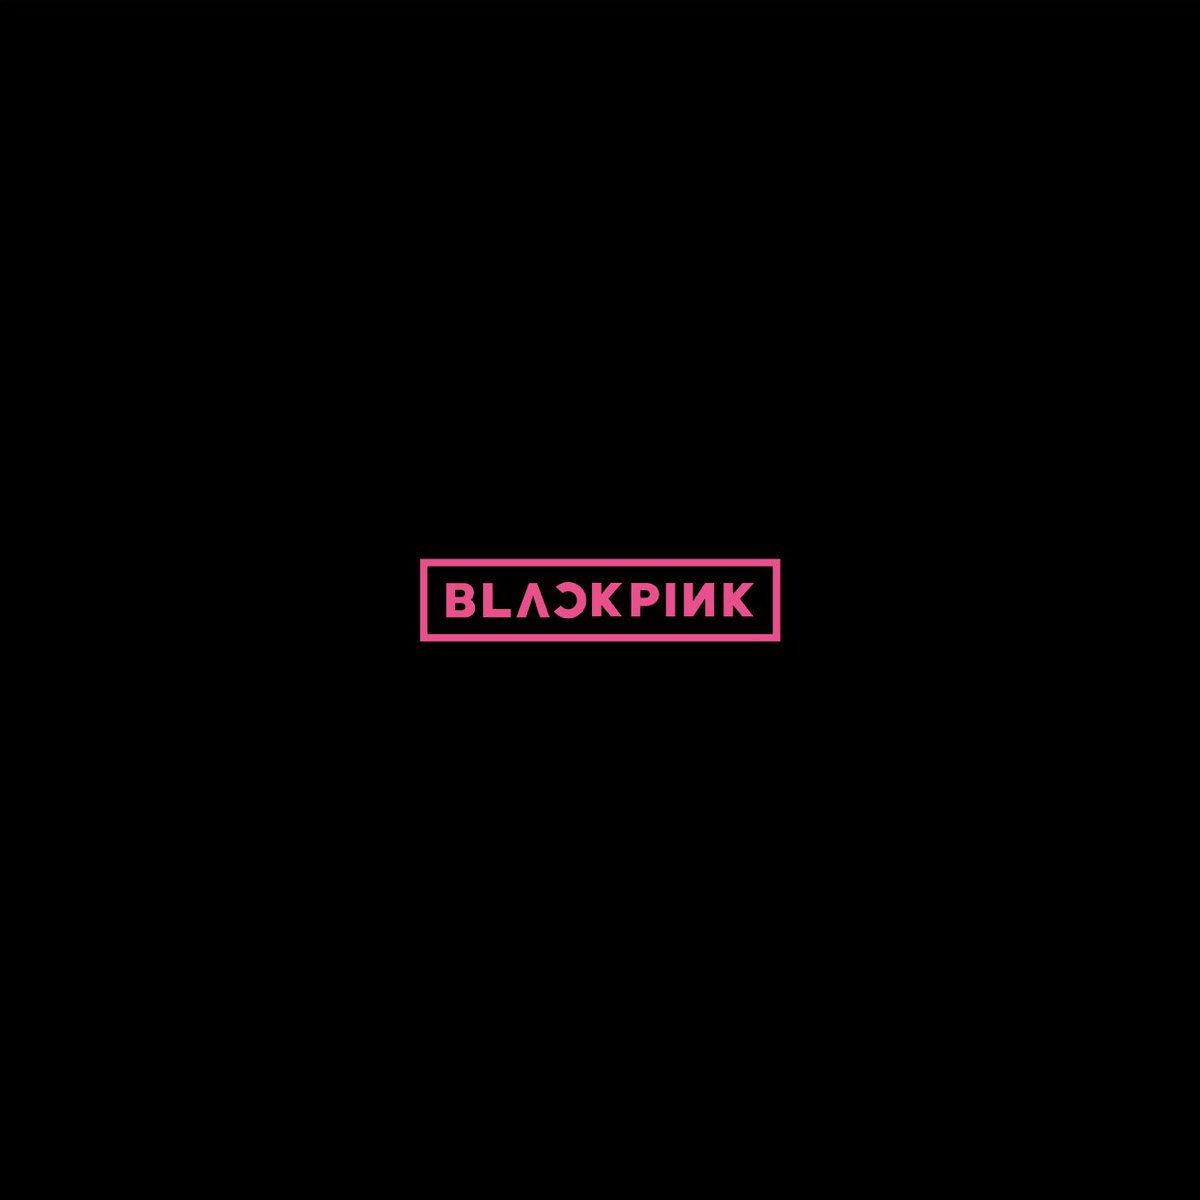 blackpink-japanese